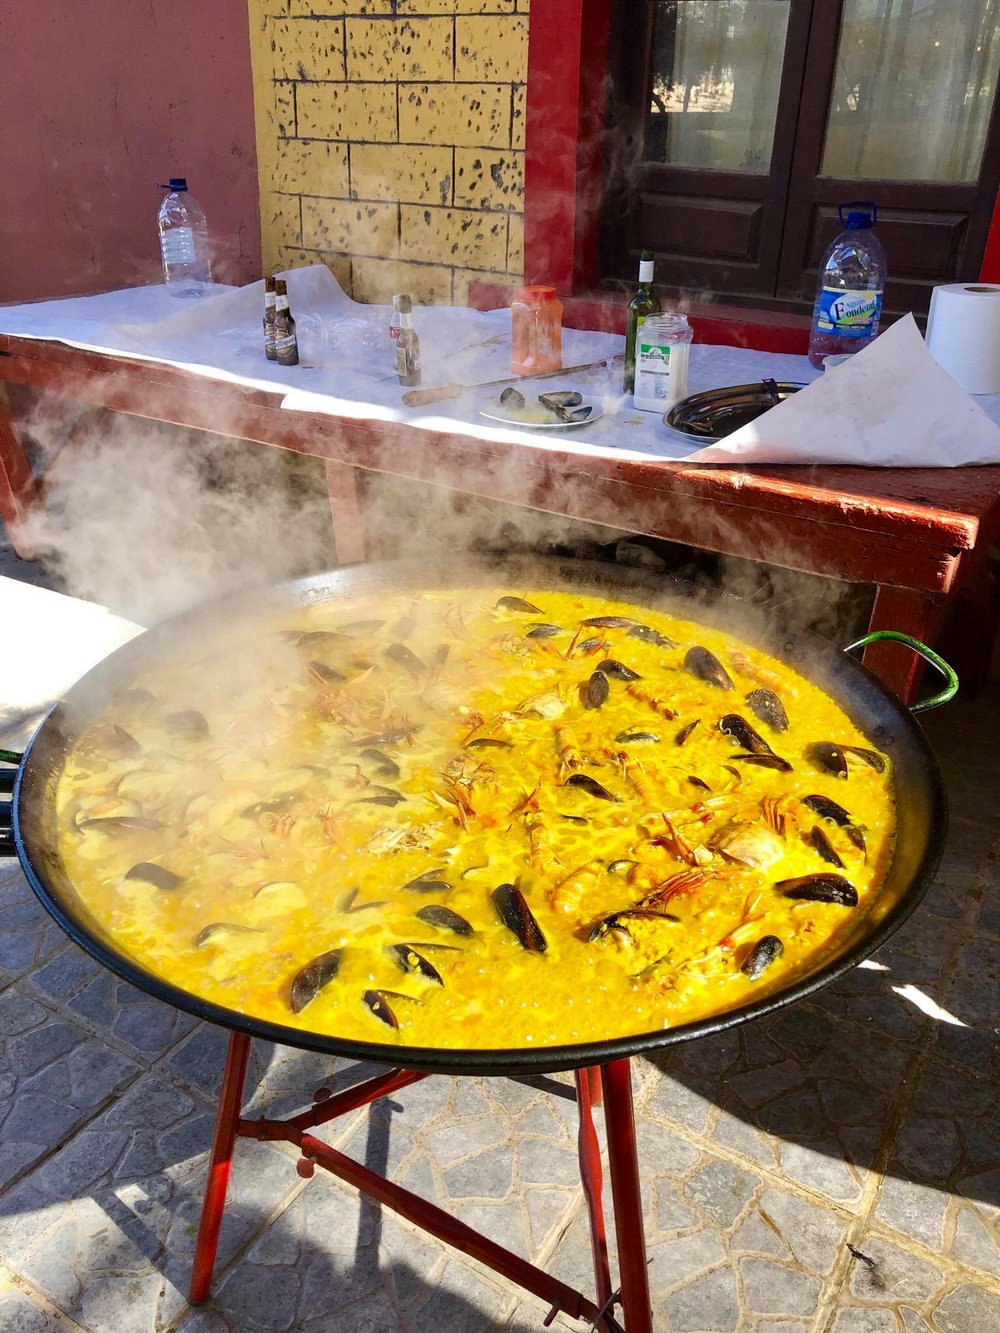 Kach Solo Travels in 2019 Full and fun itinerary here in Almeria, South of Spain28.jpg